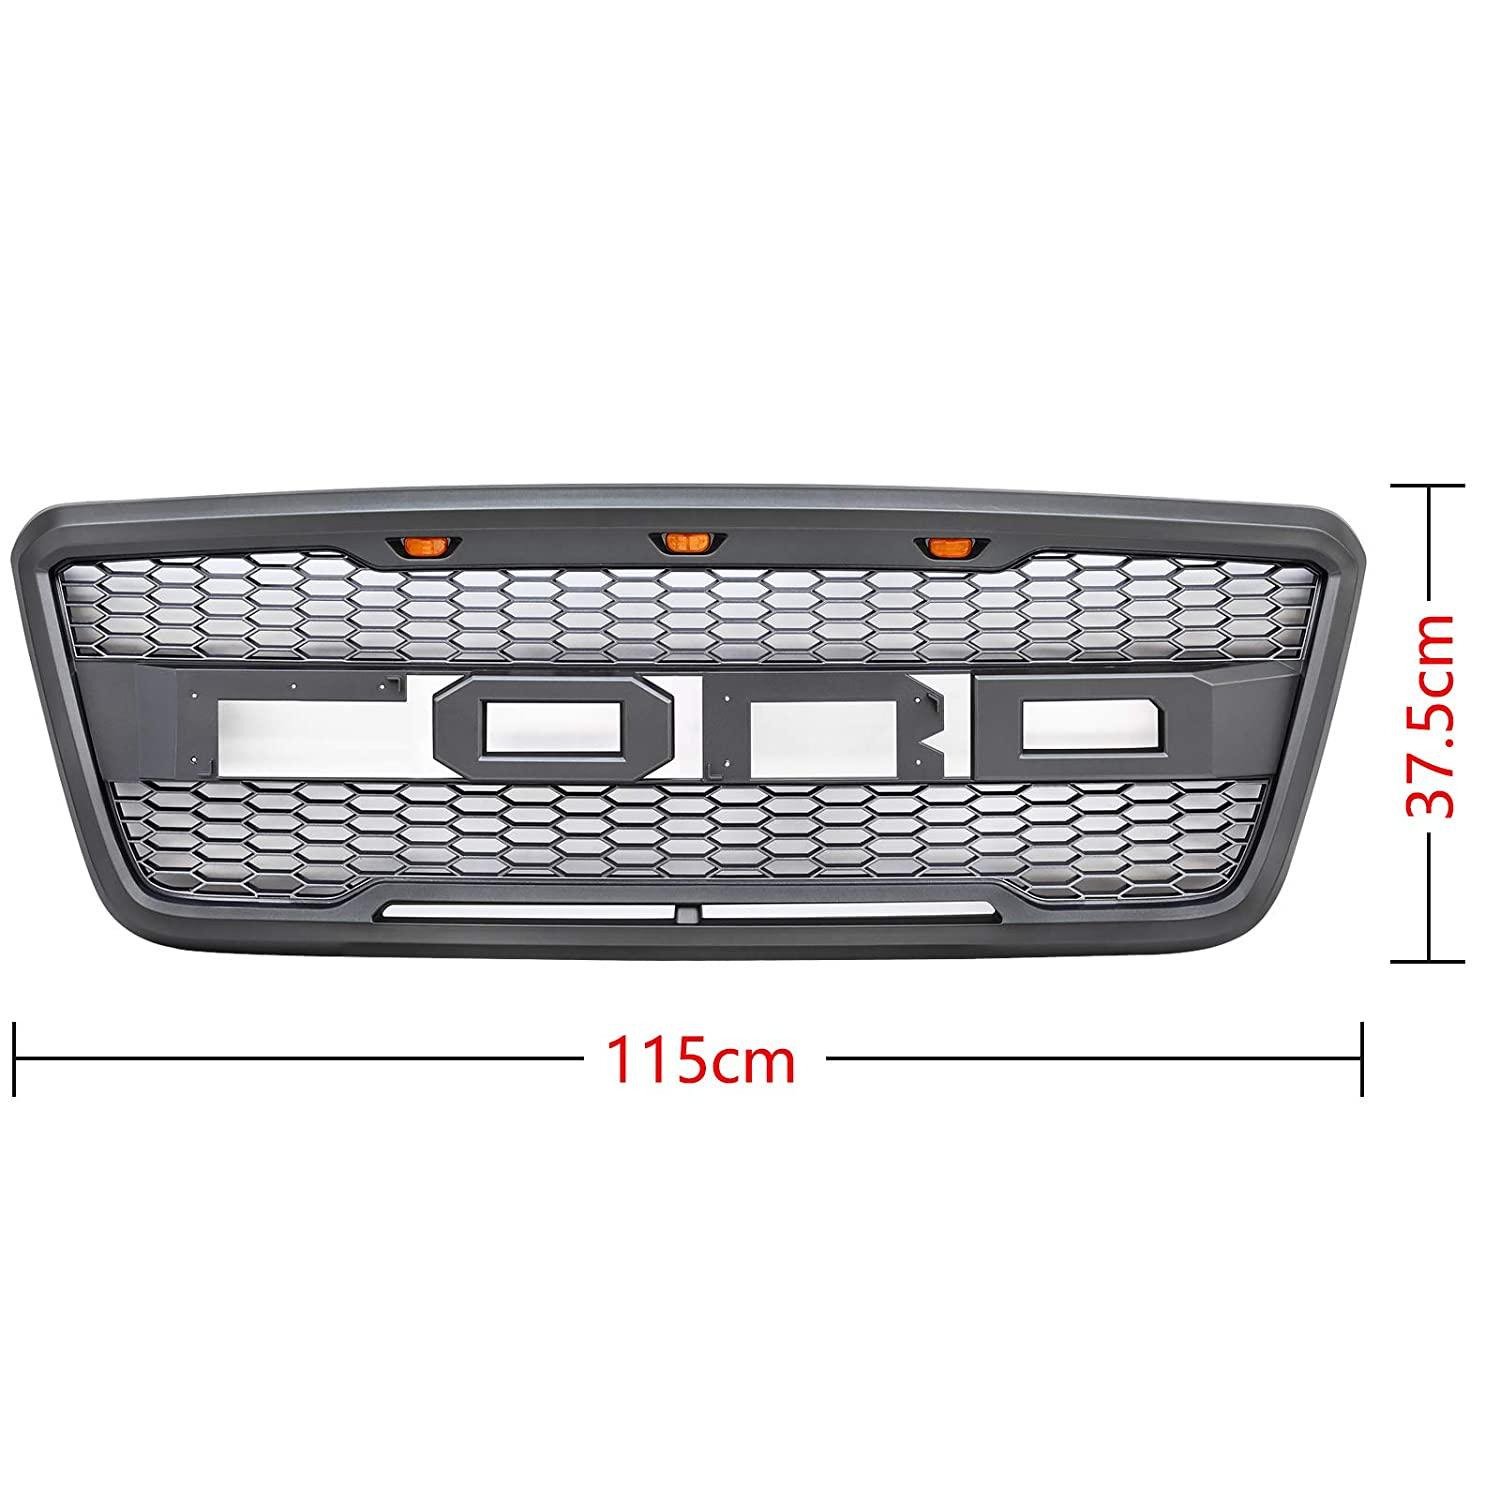 Grey Raptor Style Grille VZ4X4 Front Grill For Fd F-150 2004-2008